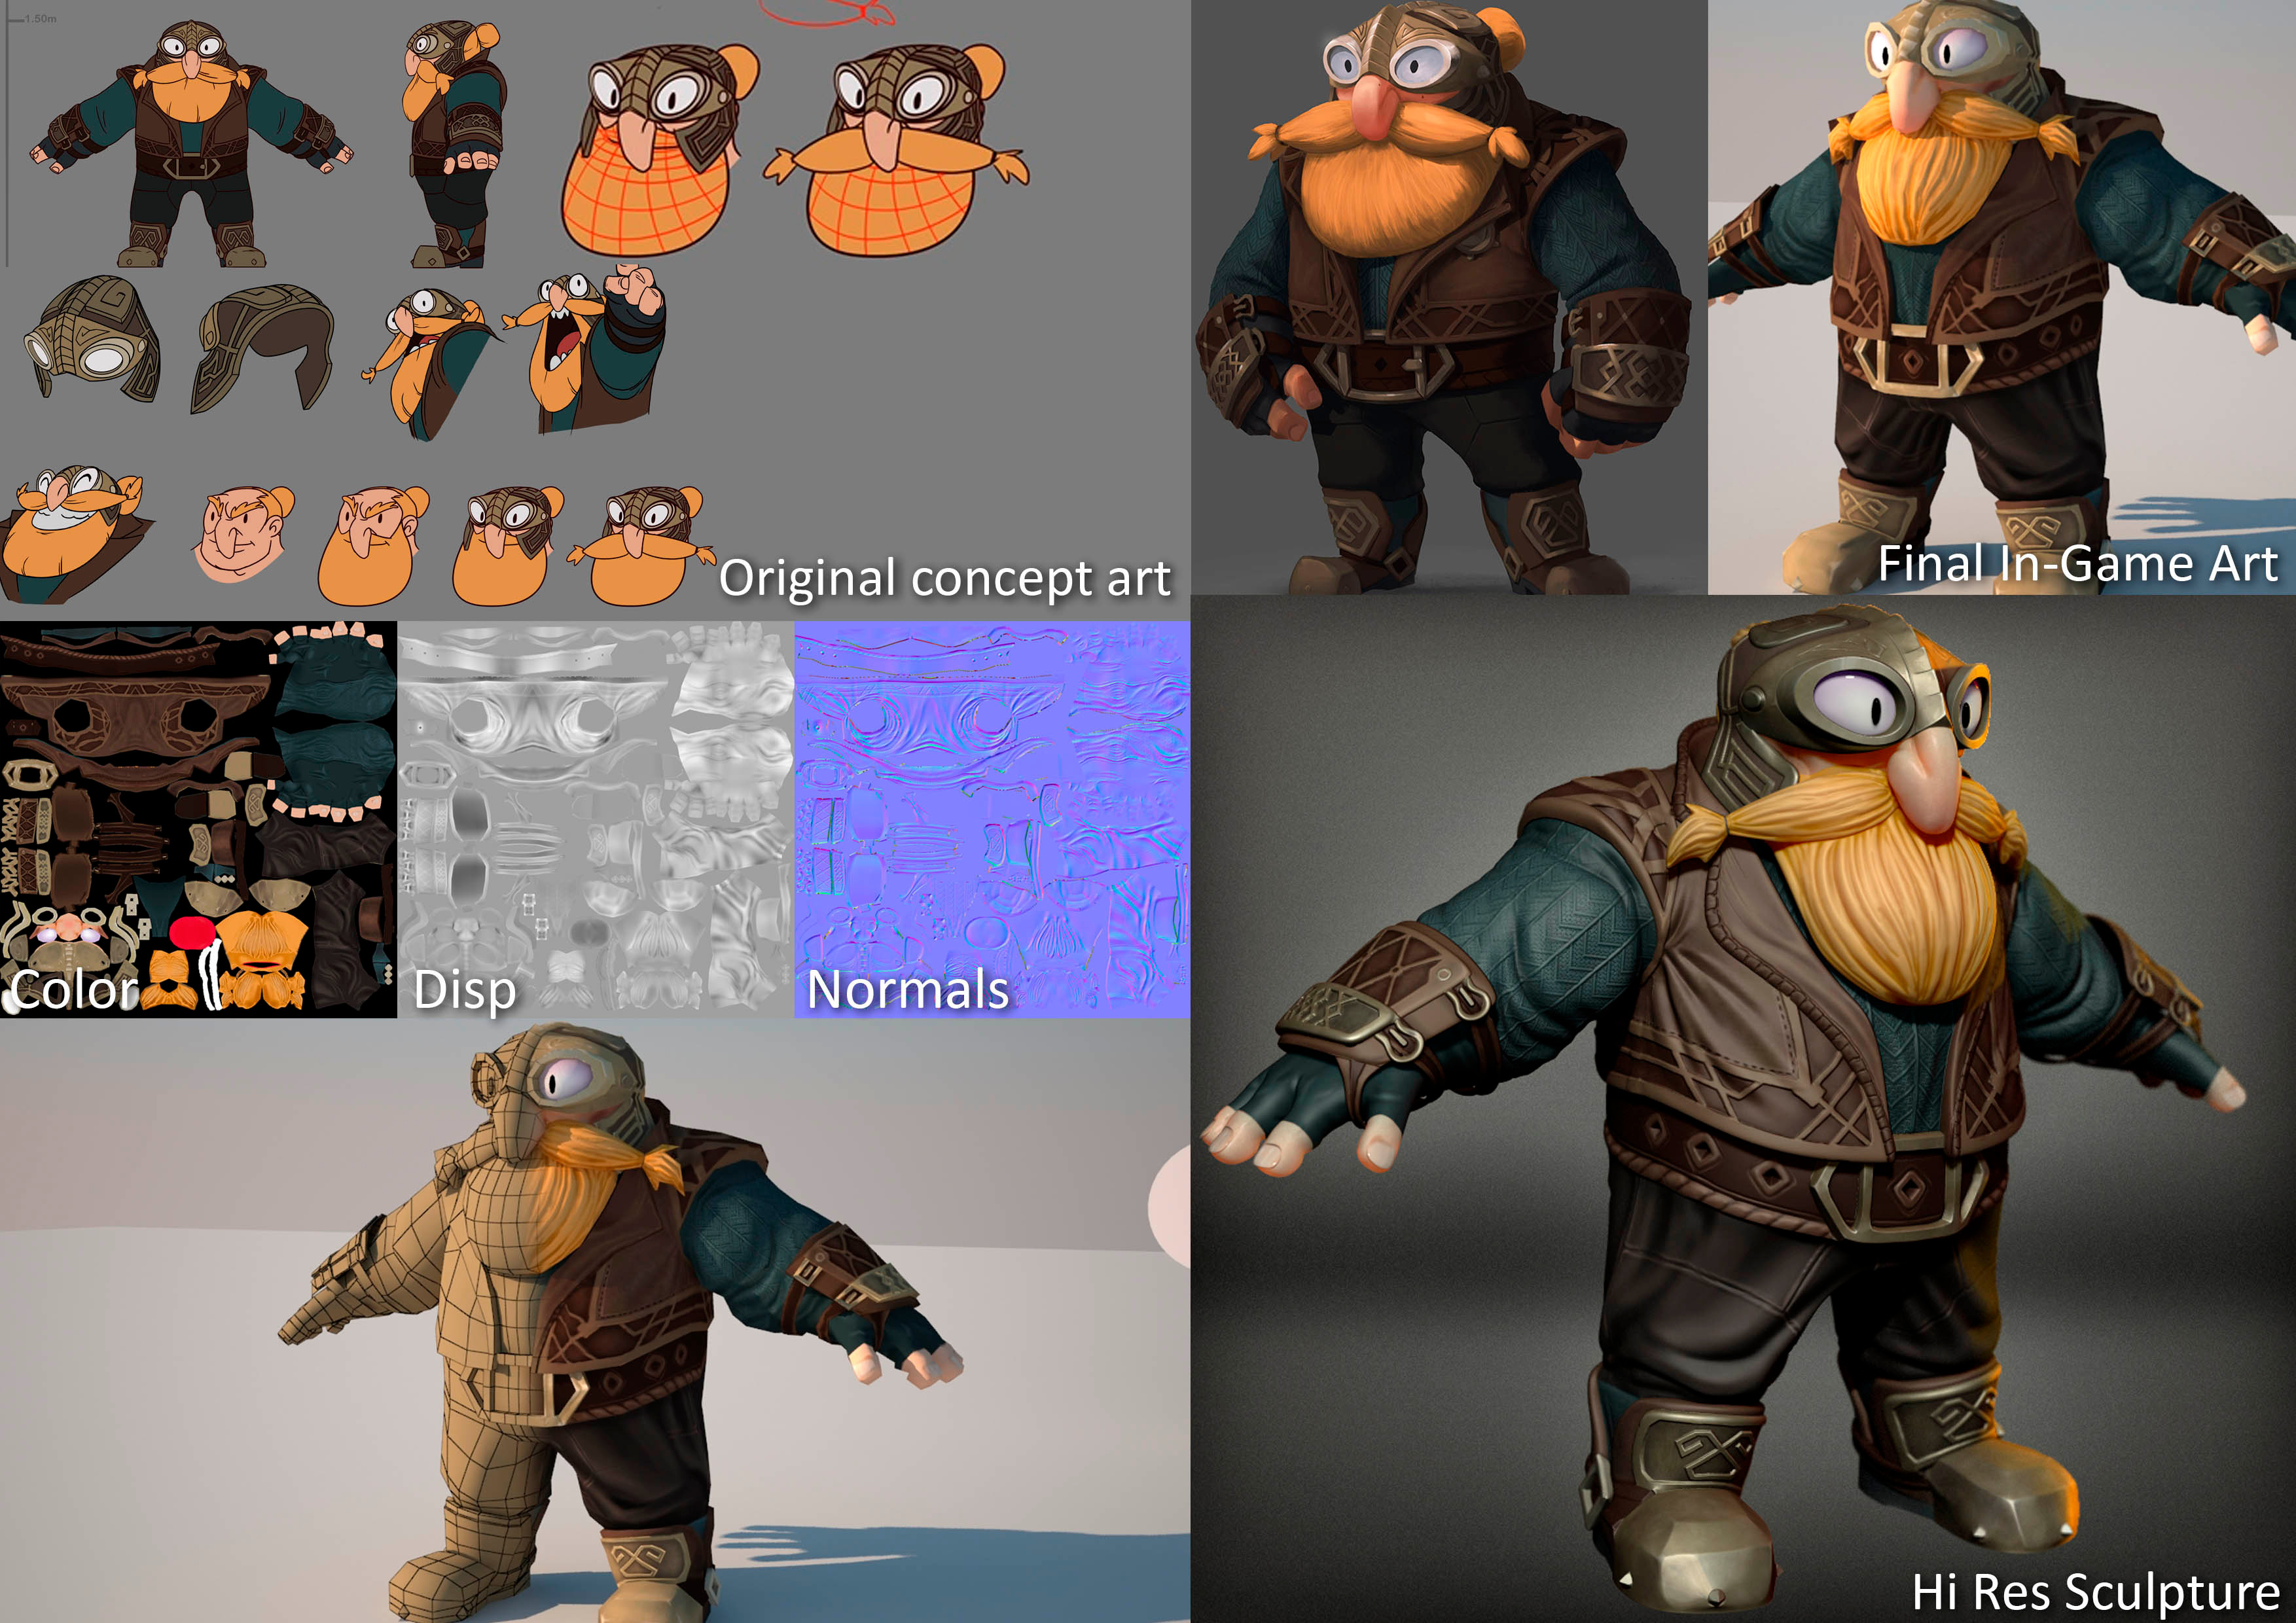 Low poly videogame character modelling (all copyrights owned by Davalor Studios)